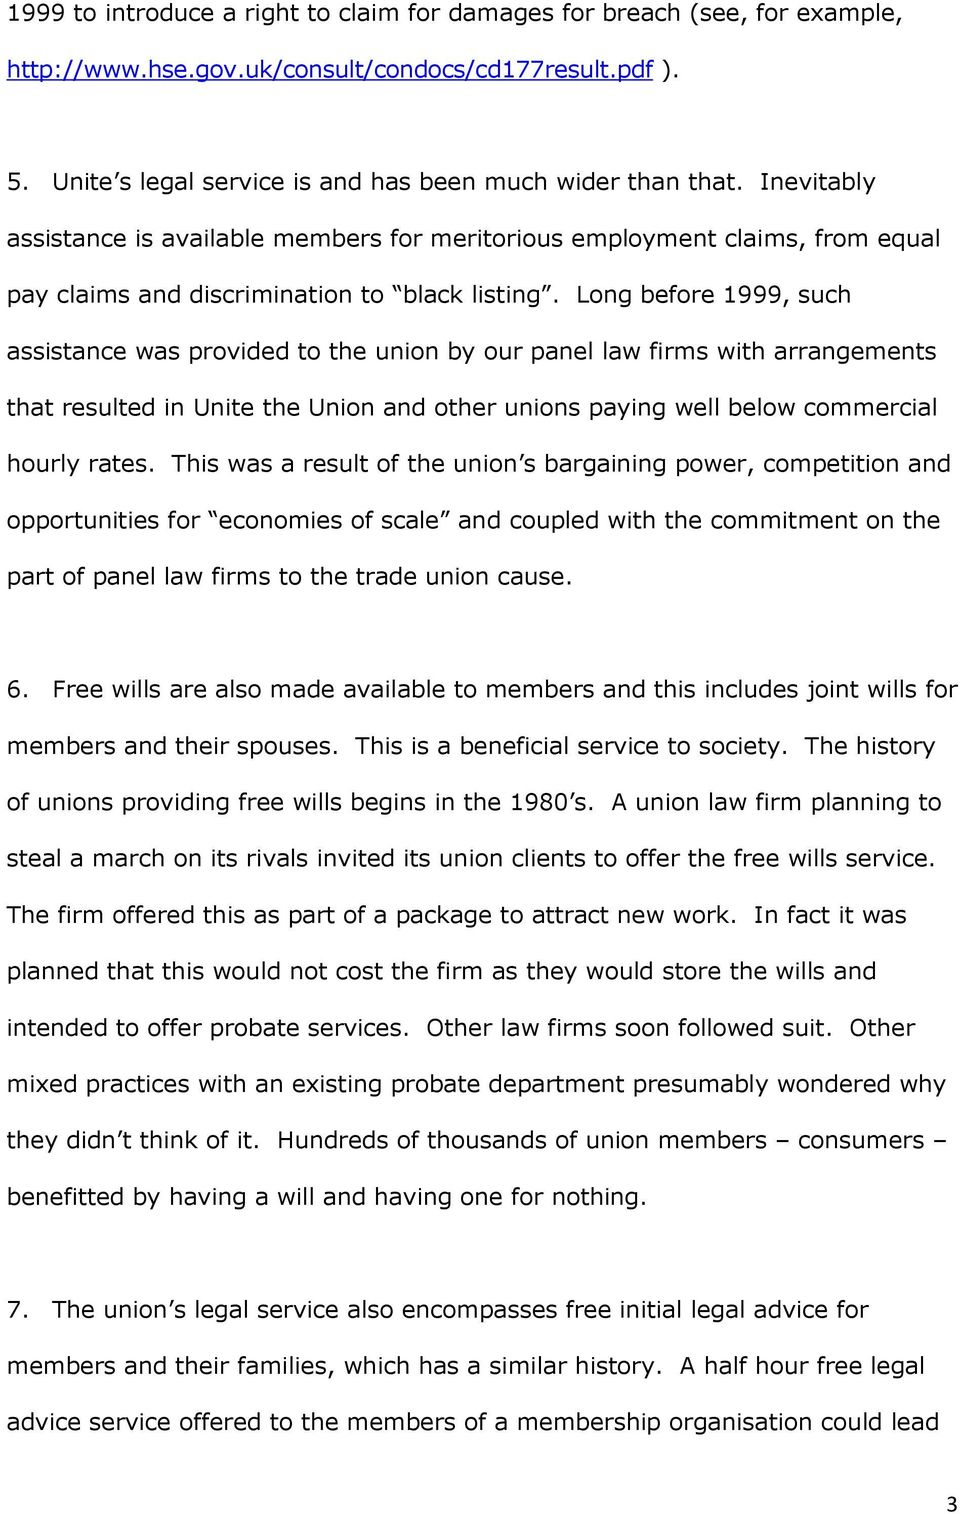 Long before 1999, such assistance was provided to the union by our panel law firms with arrangements that resulted in Unite the Union and other unions paying well below commercial hourly rates.